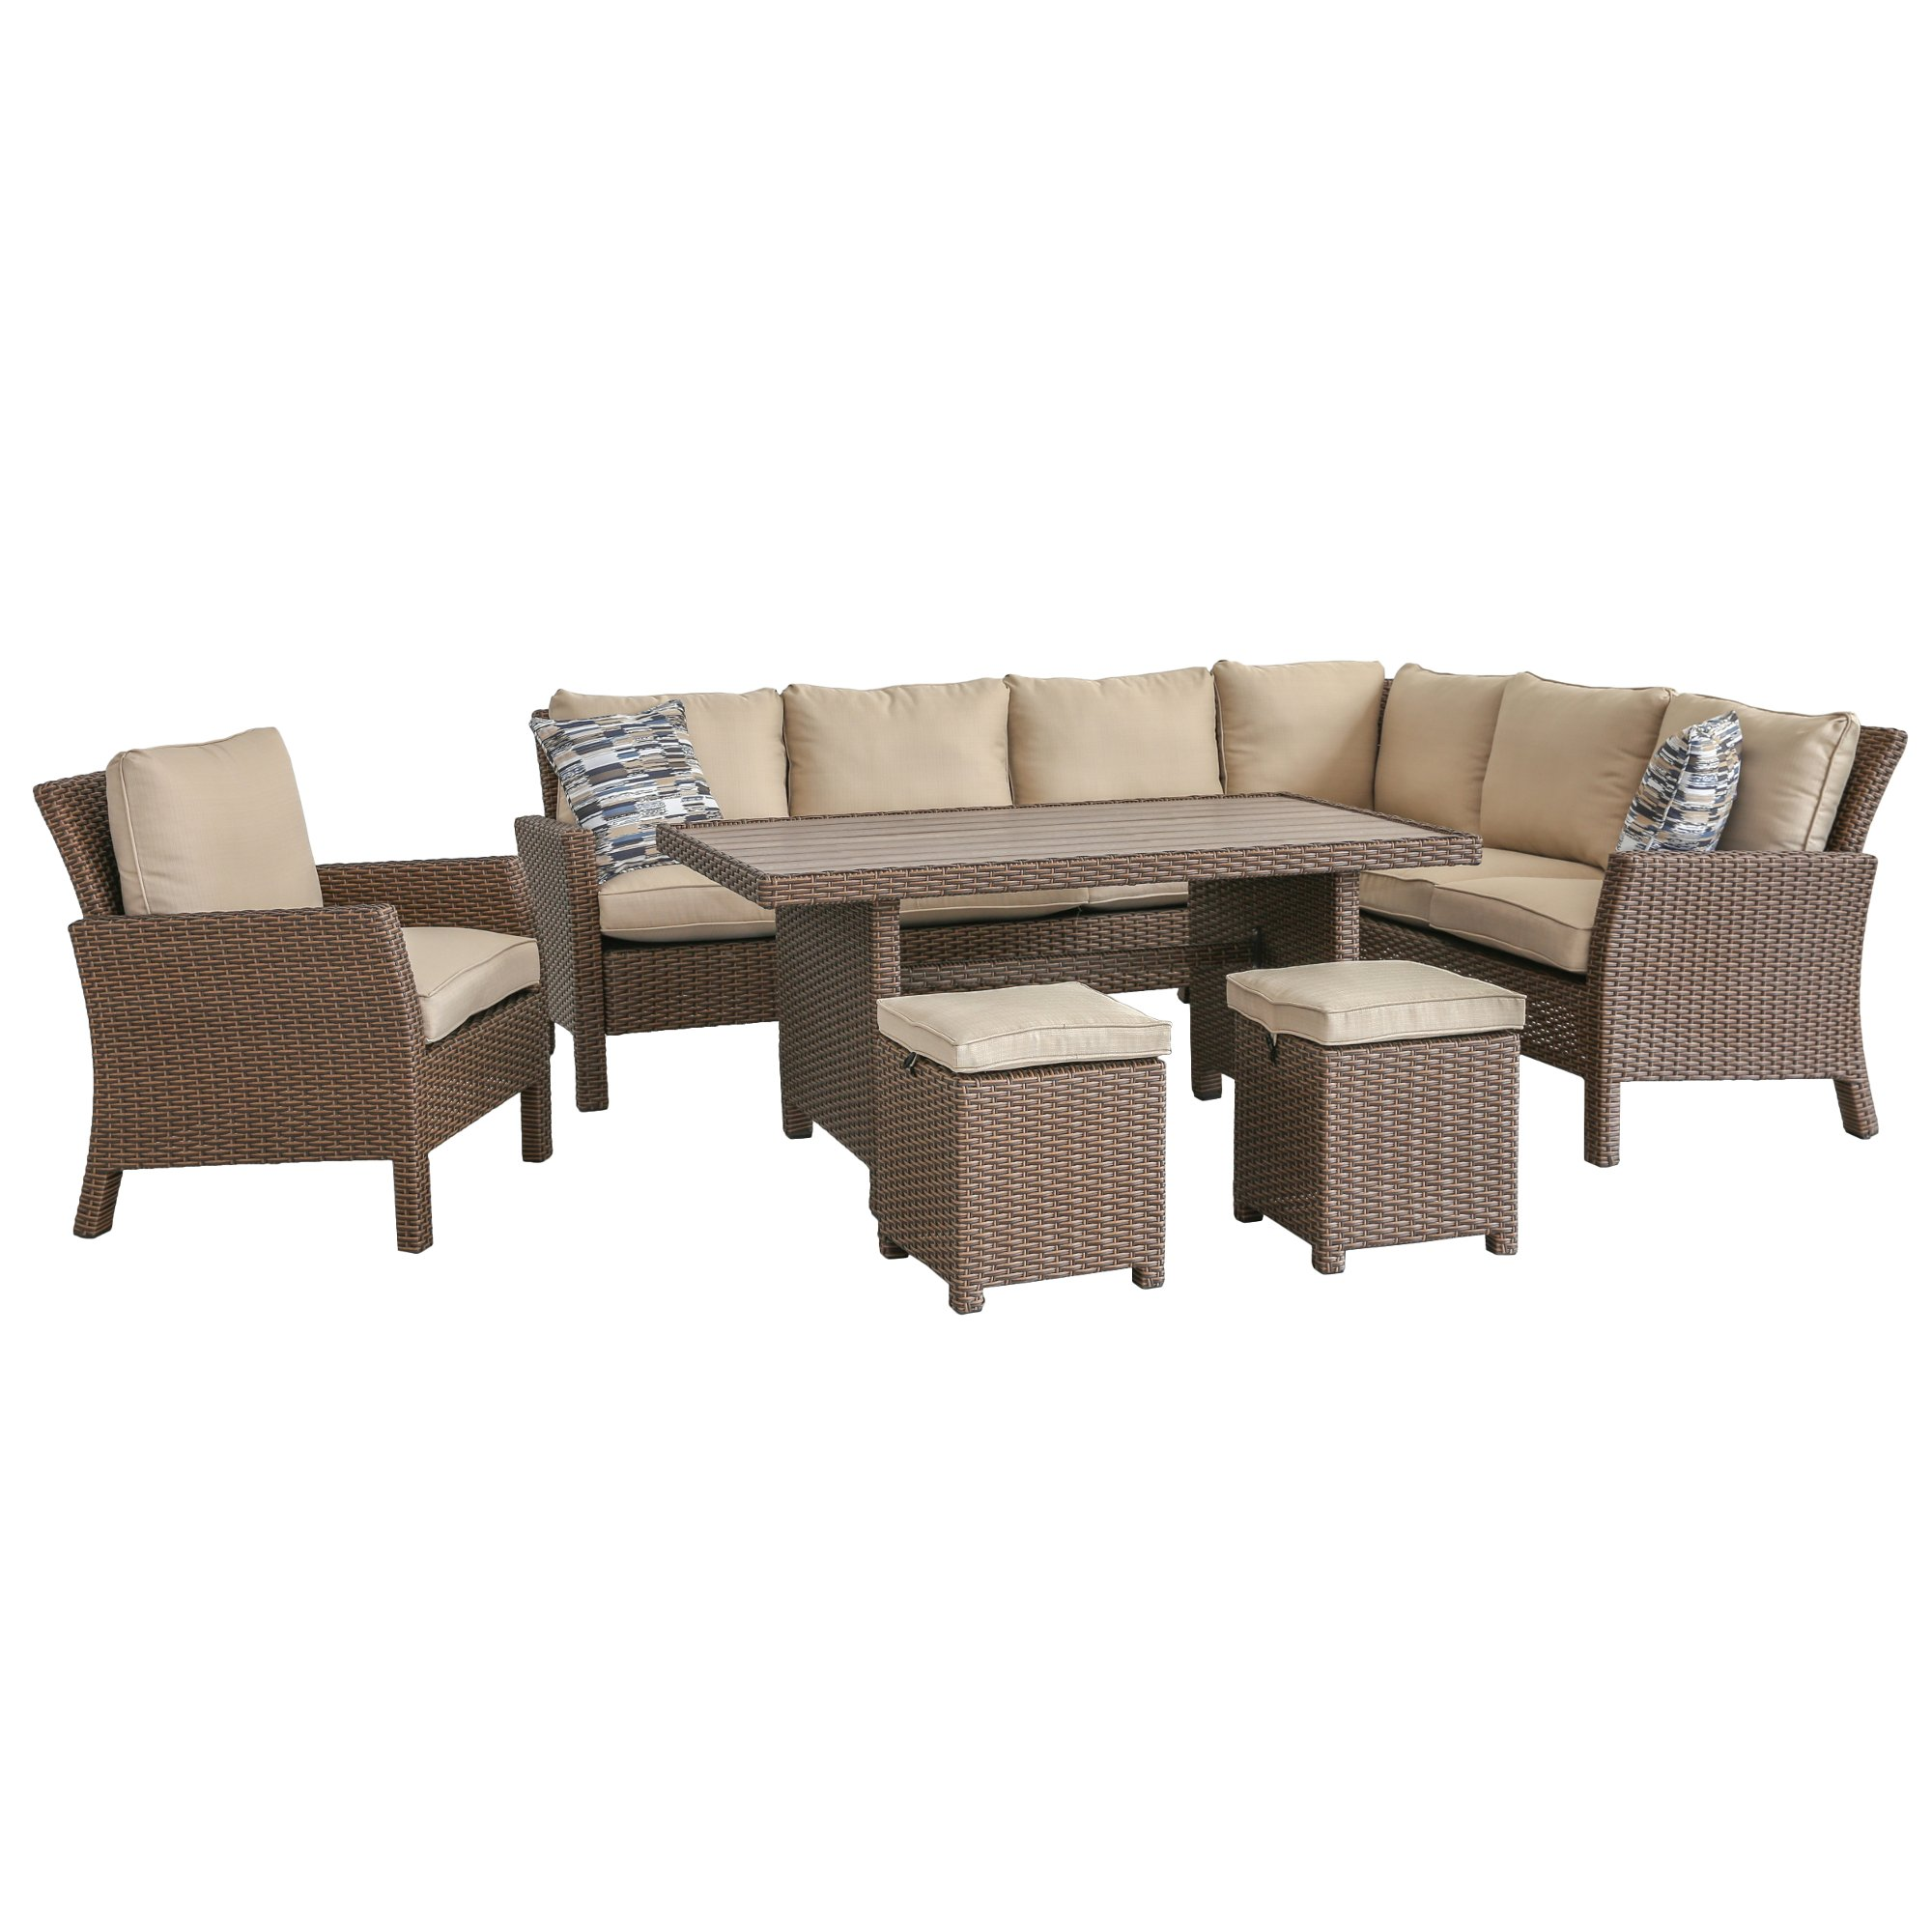 6 Piece Outdoor Patio Furniture Set Arcadia Rc Willey